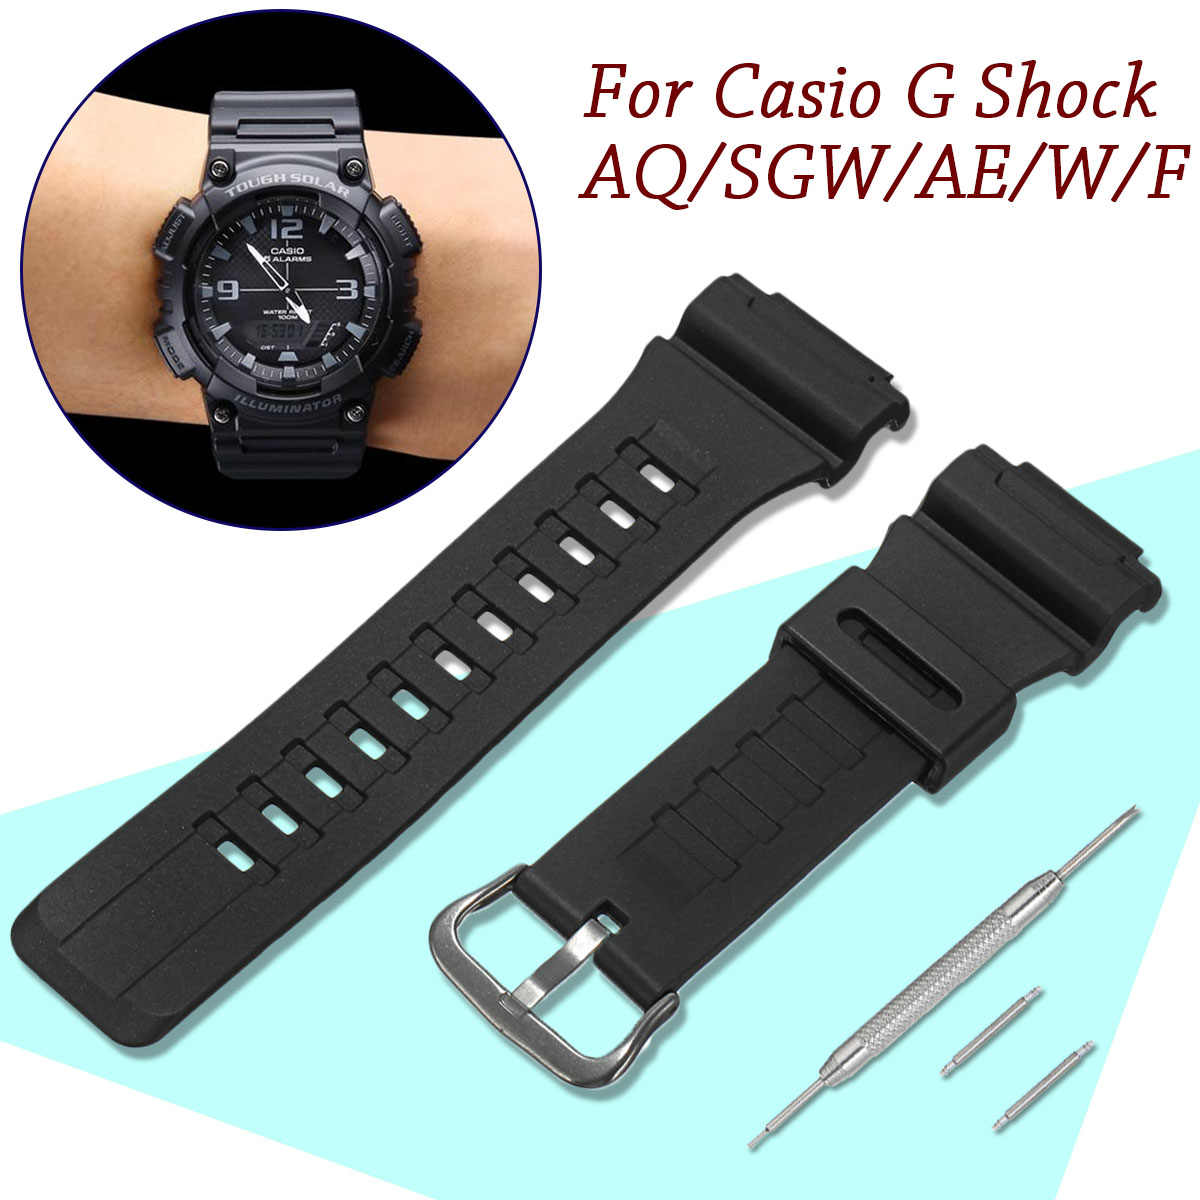 Resin watch Strap Silicone Rubber Watchband Wristband Watches Band For Casio G Shock AQ/SGW/AE /W/F 18mm Bracelet Watch